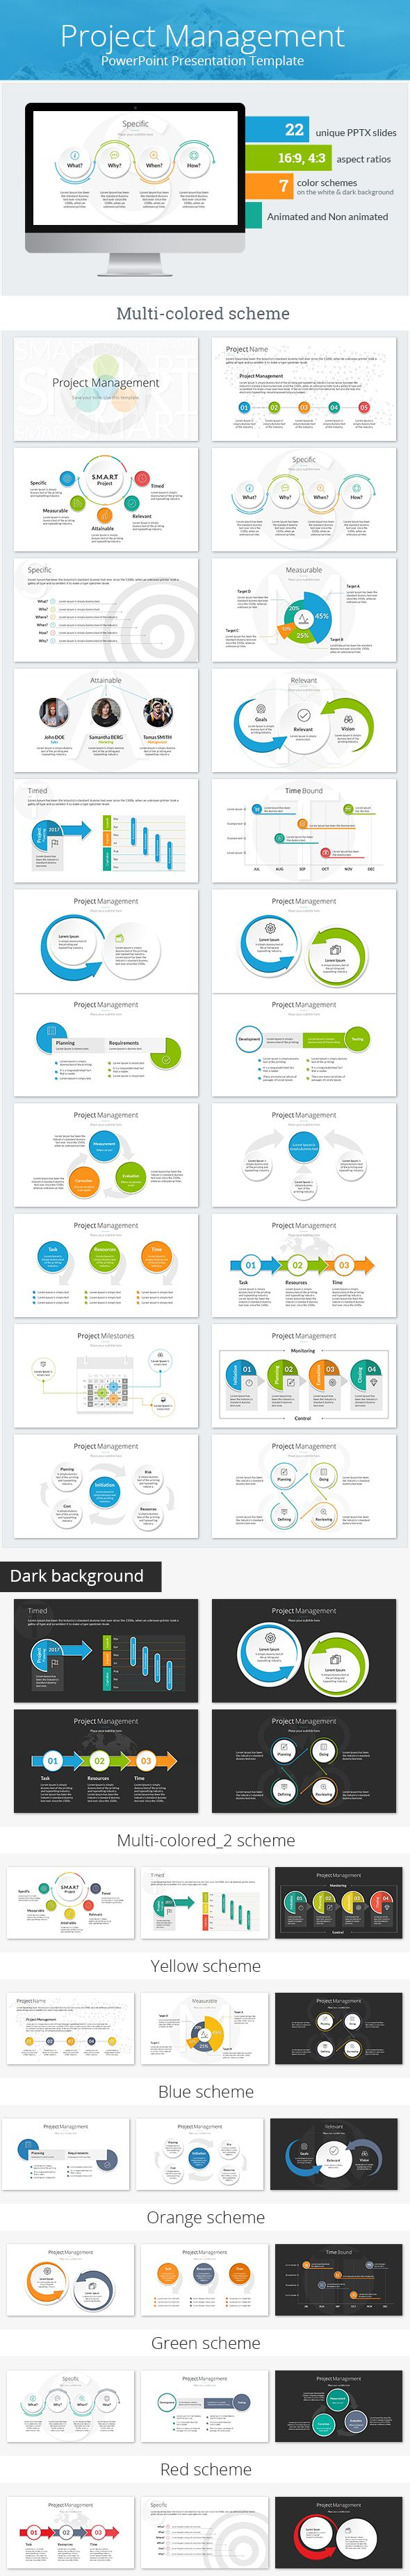 Project #Management PowerPoint #Presentation Template - #PowerPoint Templates Presentation #Templates Download here: https://graphicriver.net/item/project-management-powerpoint-presentation-template/19506687?ref=alena994